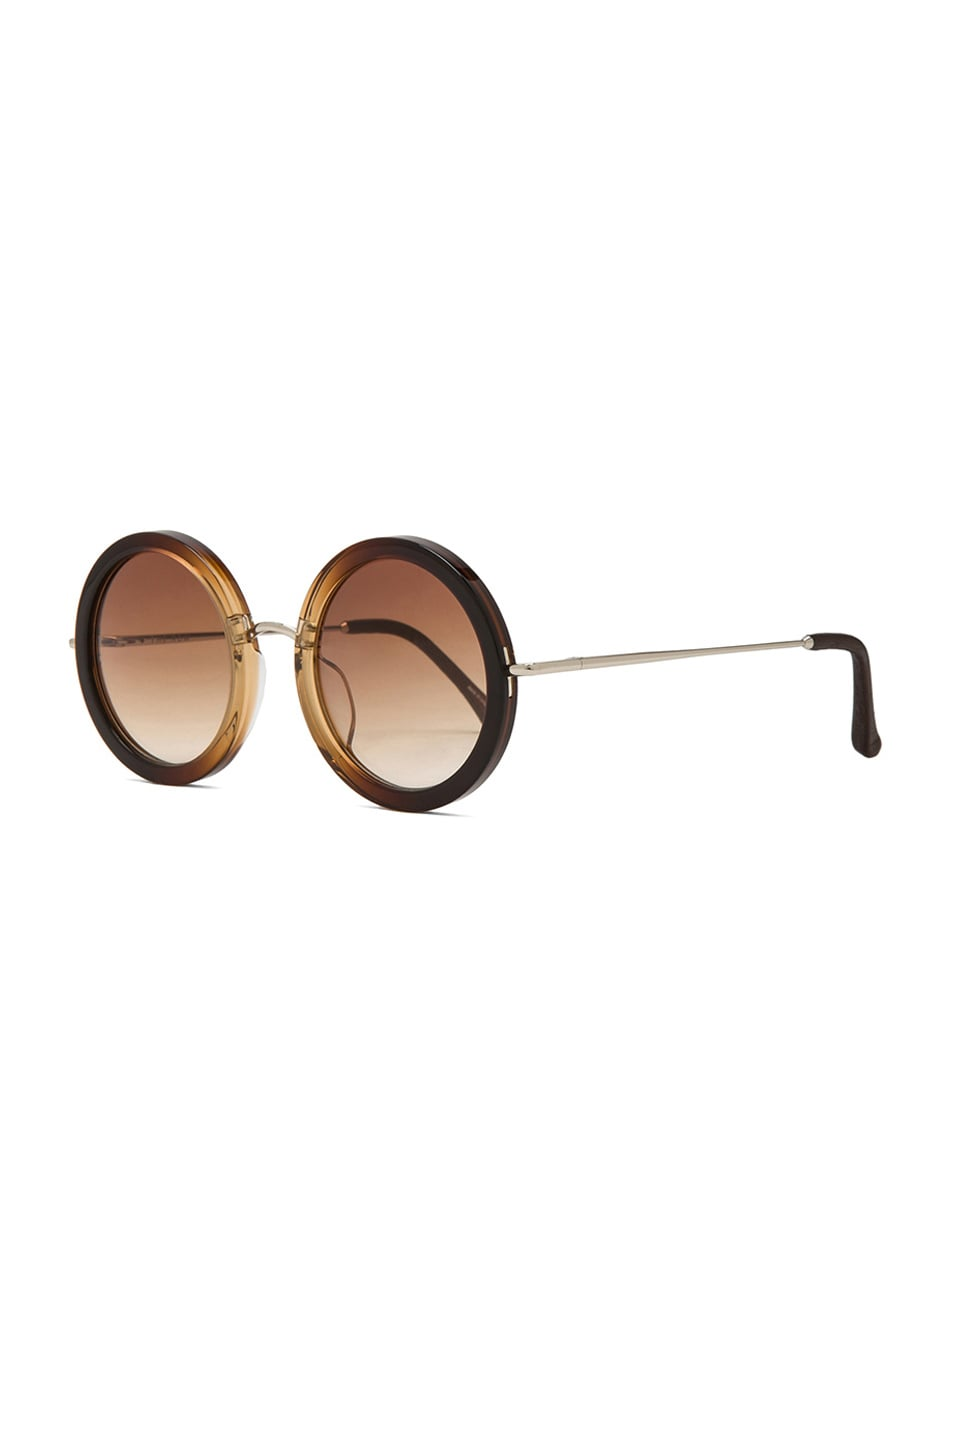 Image 2 of The Row Signature Circle Sunglasses in Molasses Gradient